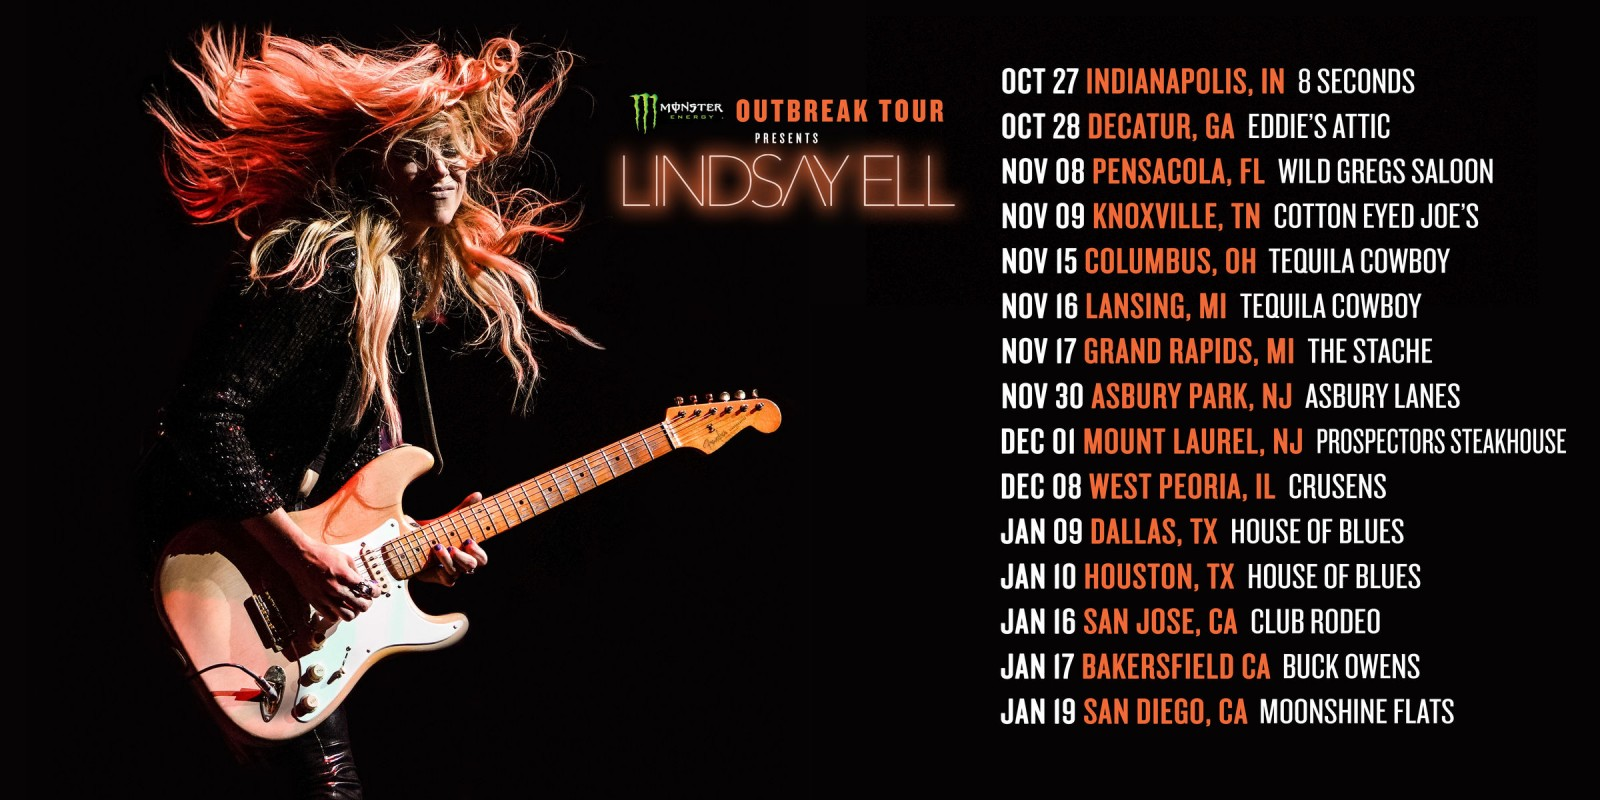 Assets to promote the Monster Energy Outbreak Tour for Lindsay Ell